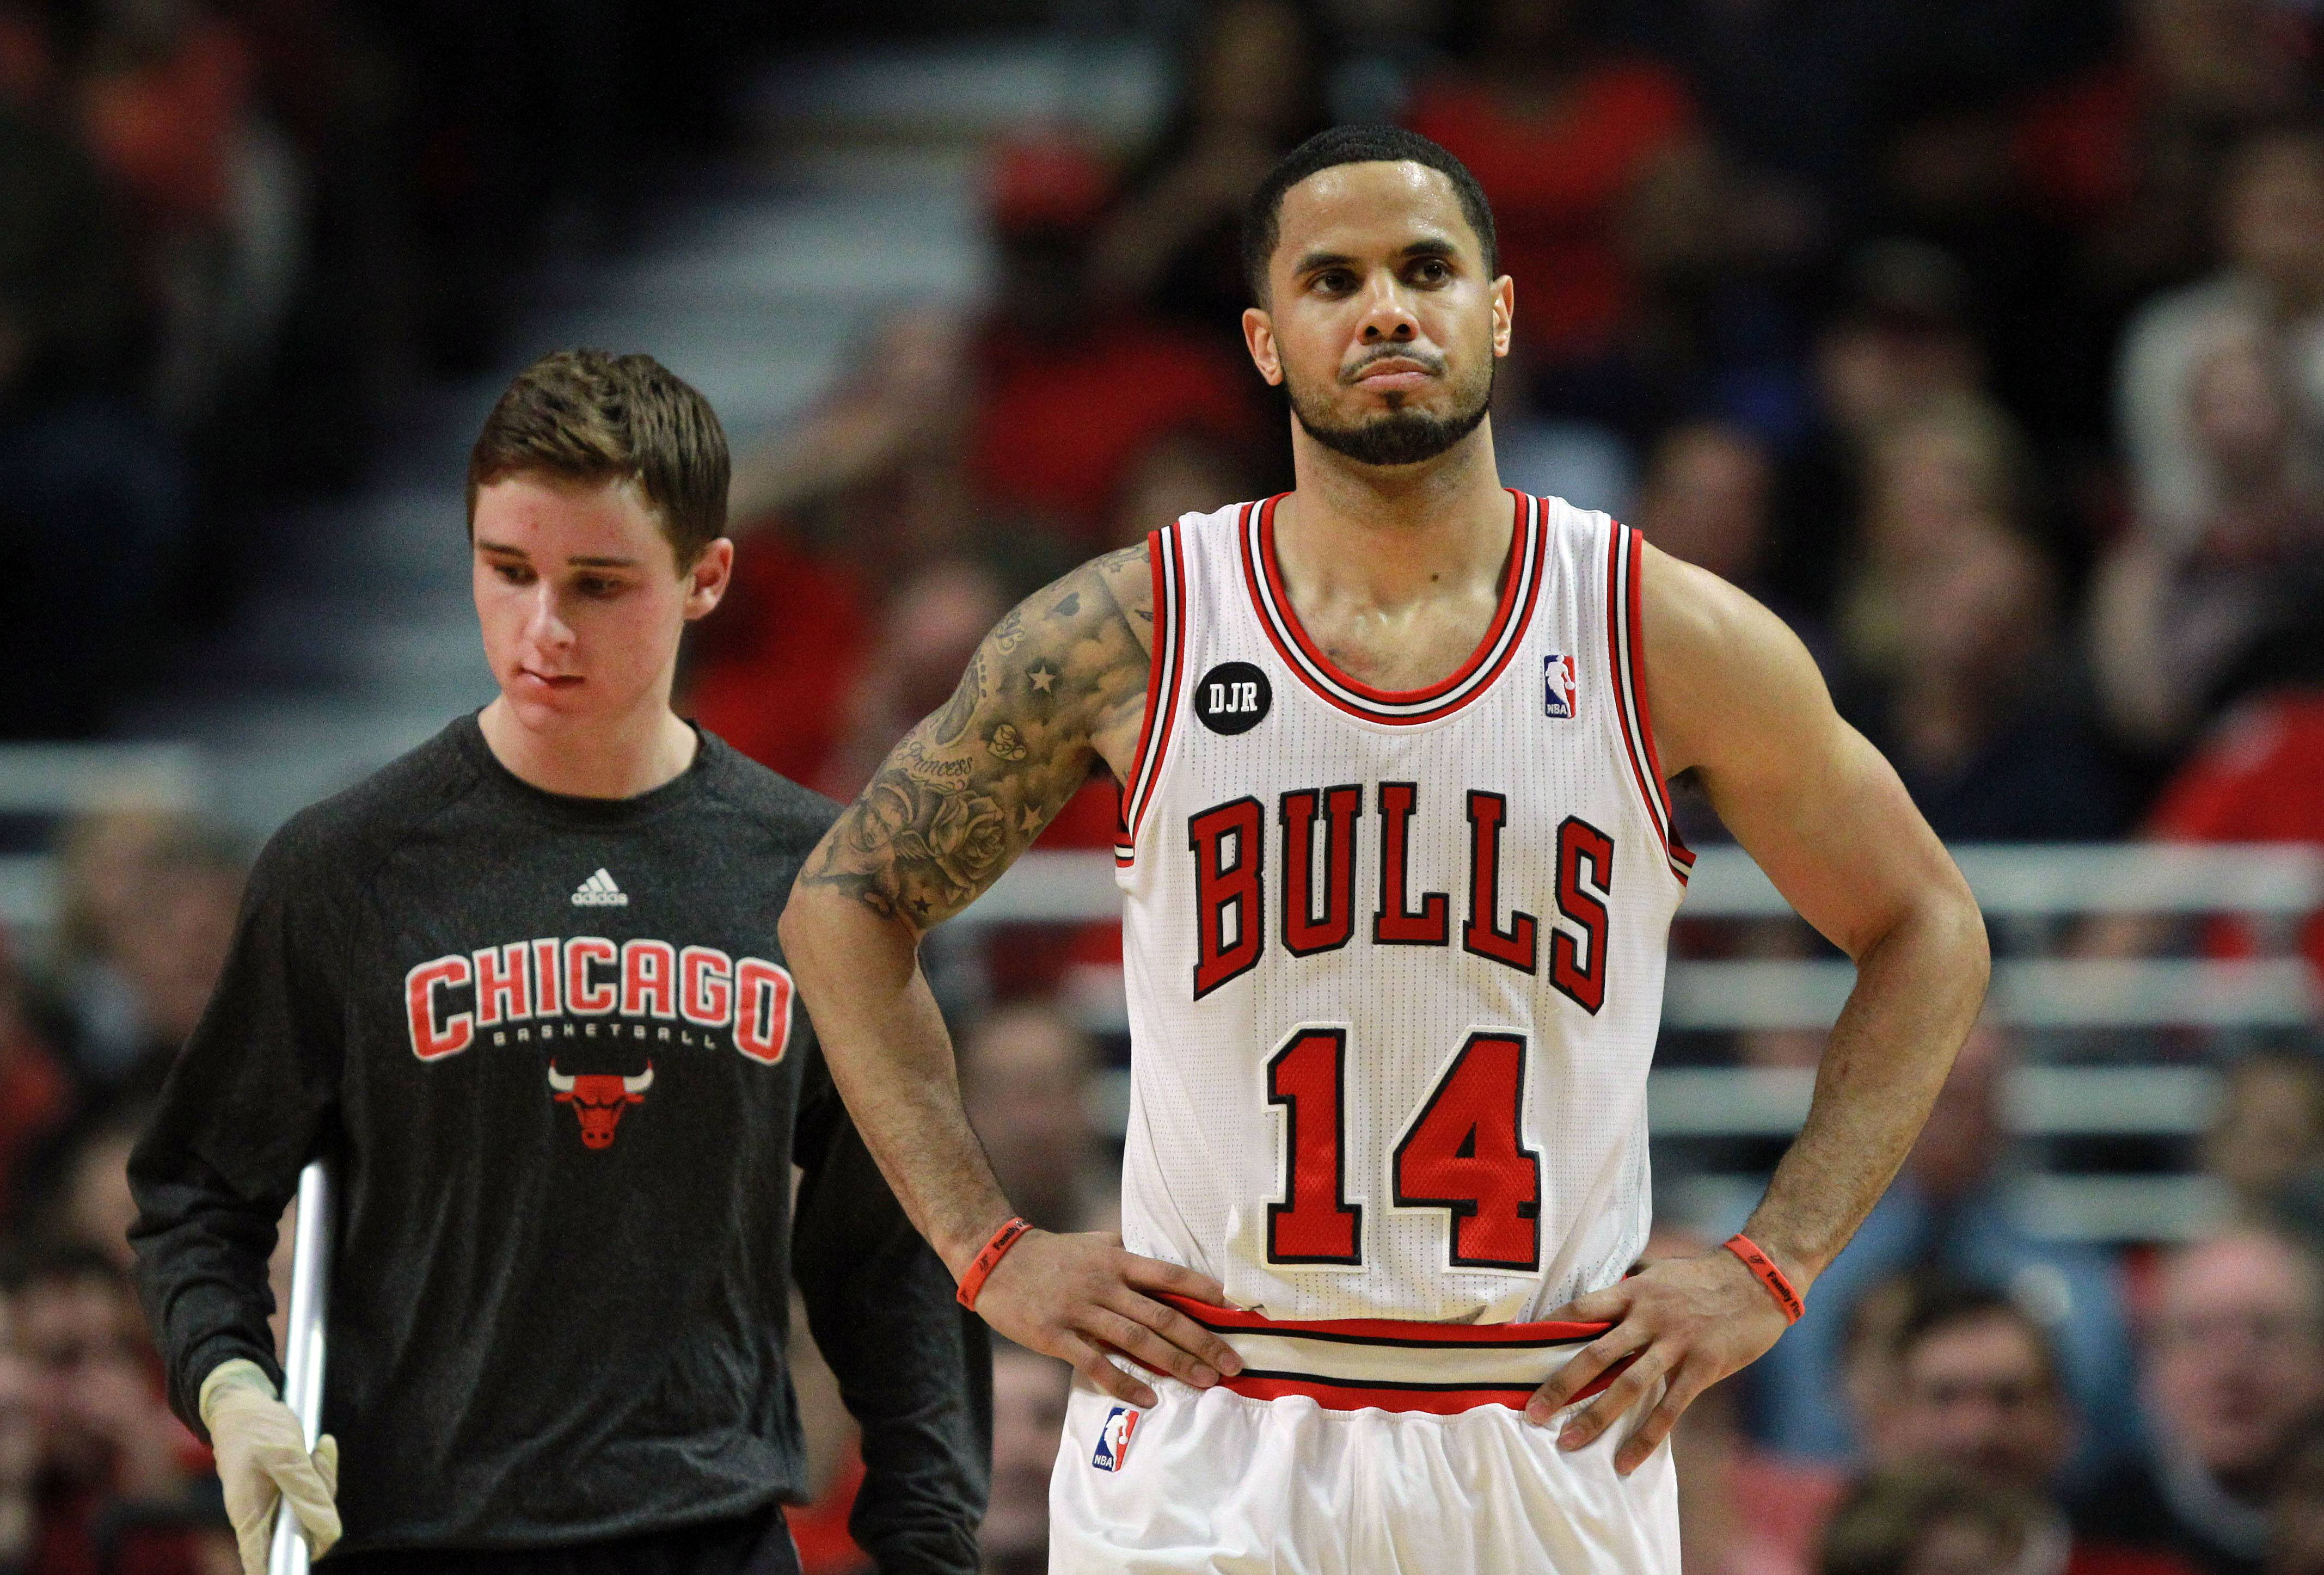 Chicago Bulls guard D.J. Augustin reacts.